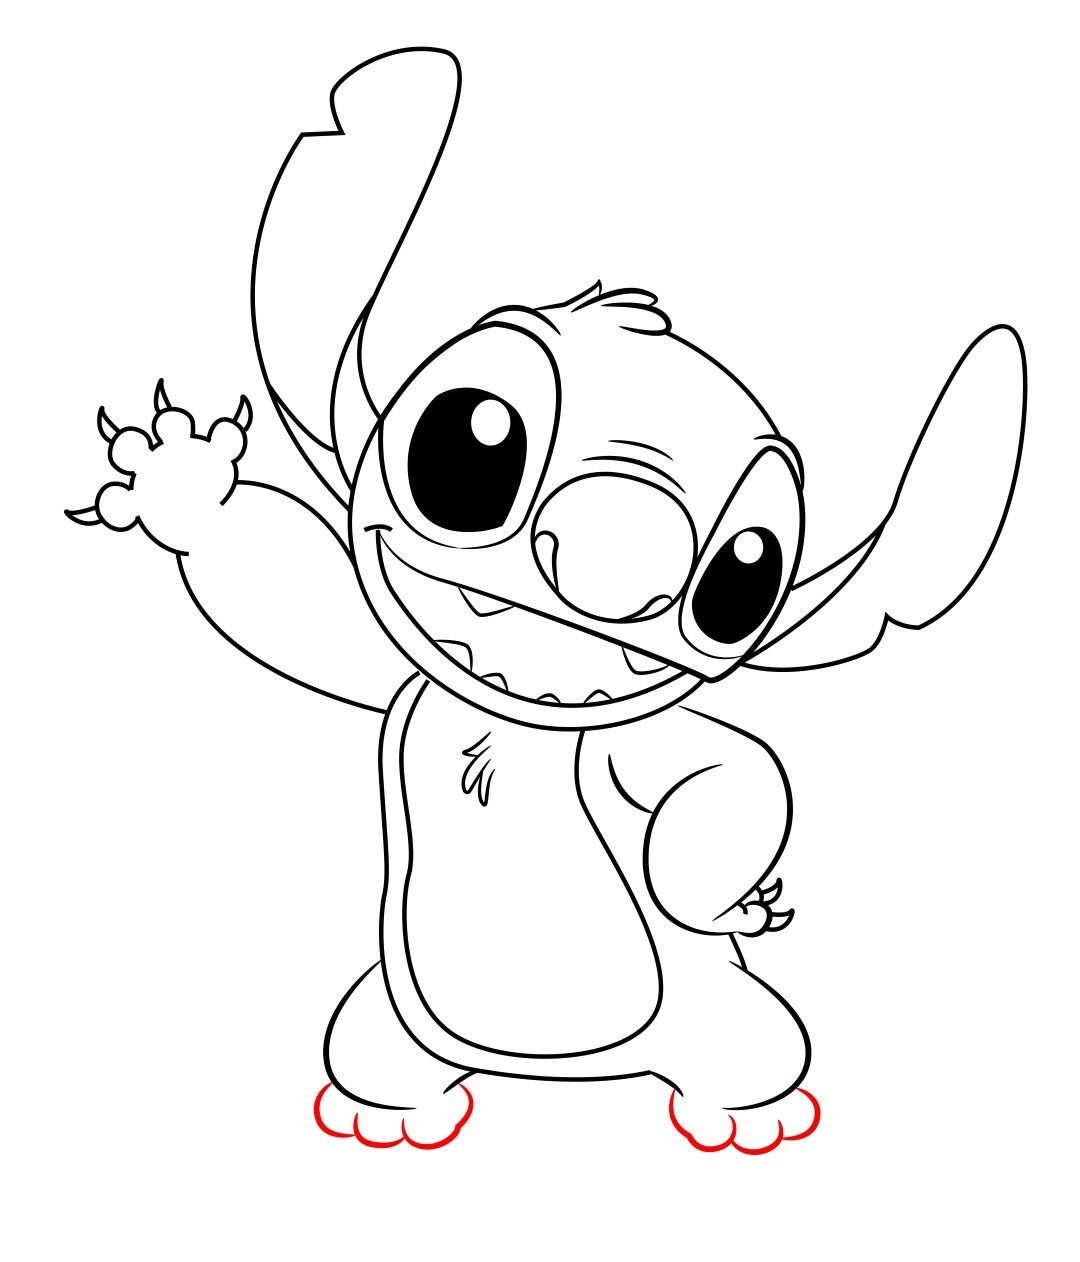 How To Draw Stitch From Lilo And Stitch  Draw Central is part of Stitch drawing - Today we're going to learn how to draw Stitch, from the Disney movie, Lilo and Stitch  I remember when Lilo and Stitch was first released back when I was still in middle school  For me, this movie signaled that Disney being back to making wonderful animated movies  Anyway, let's learn how to draw Stitch!   …